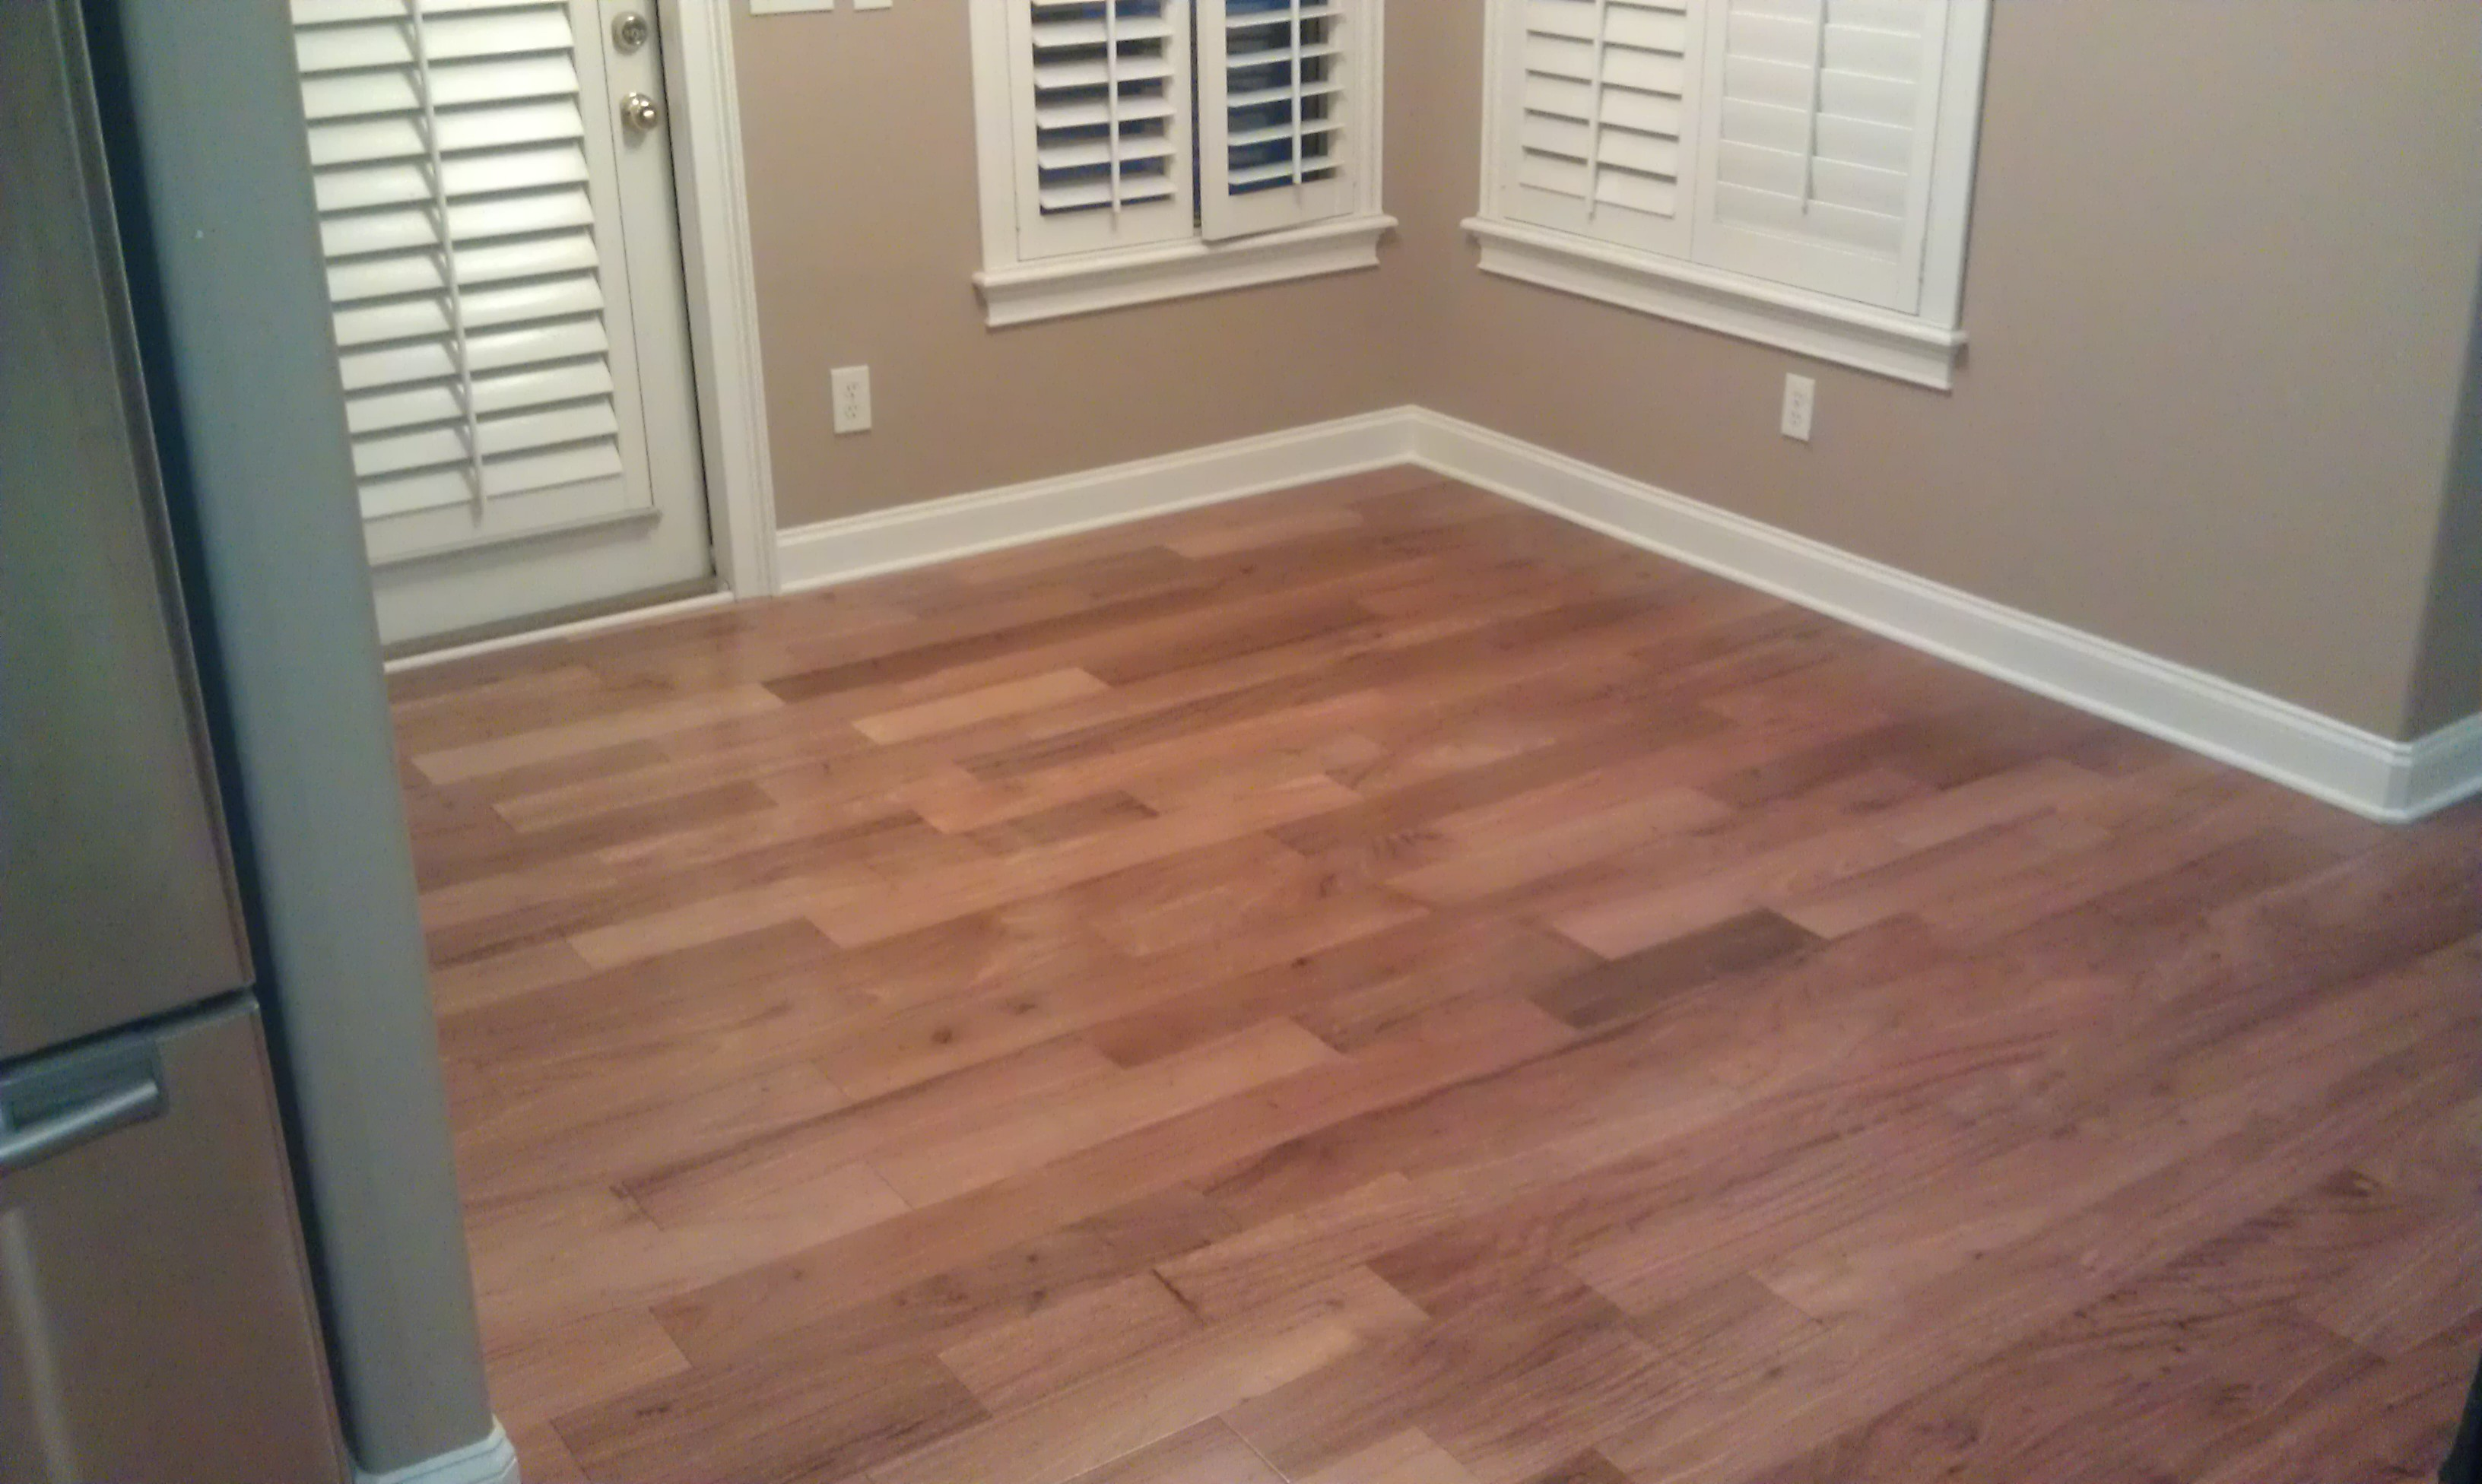 Laminate flooring in jacksonville for home renovations laminate flooring dailygadgetfo Images